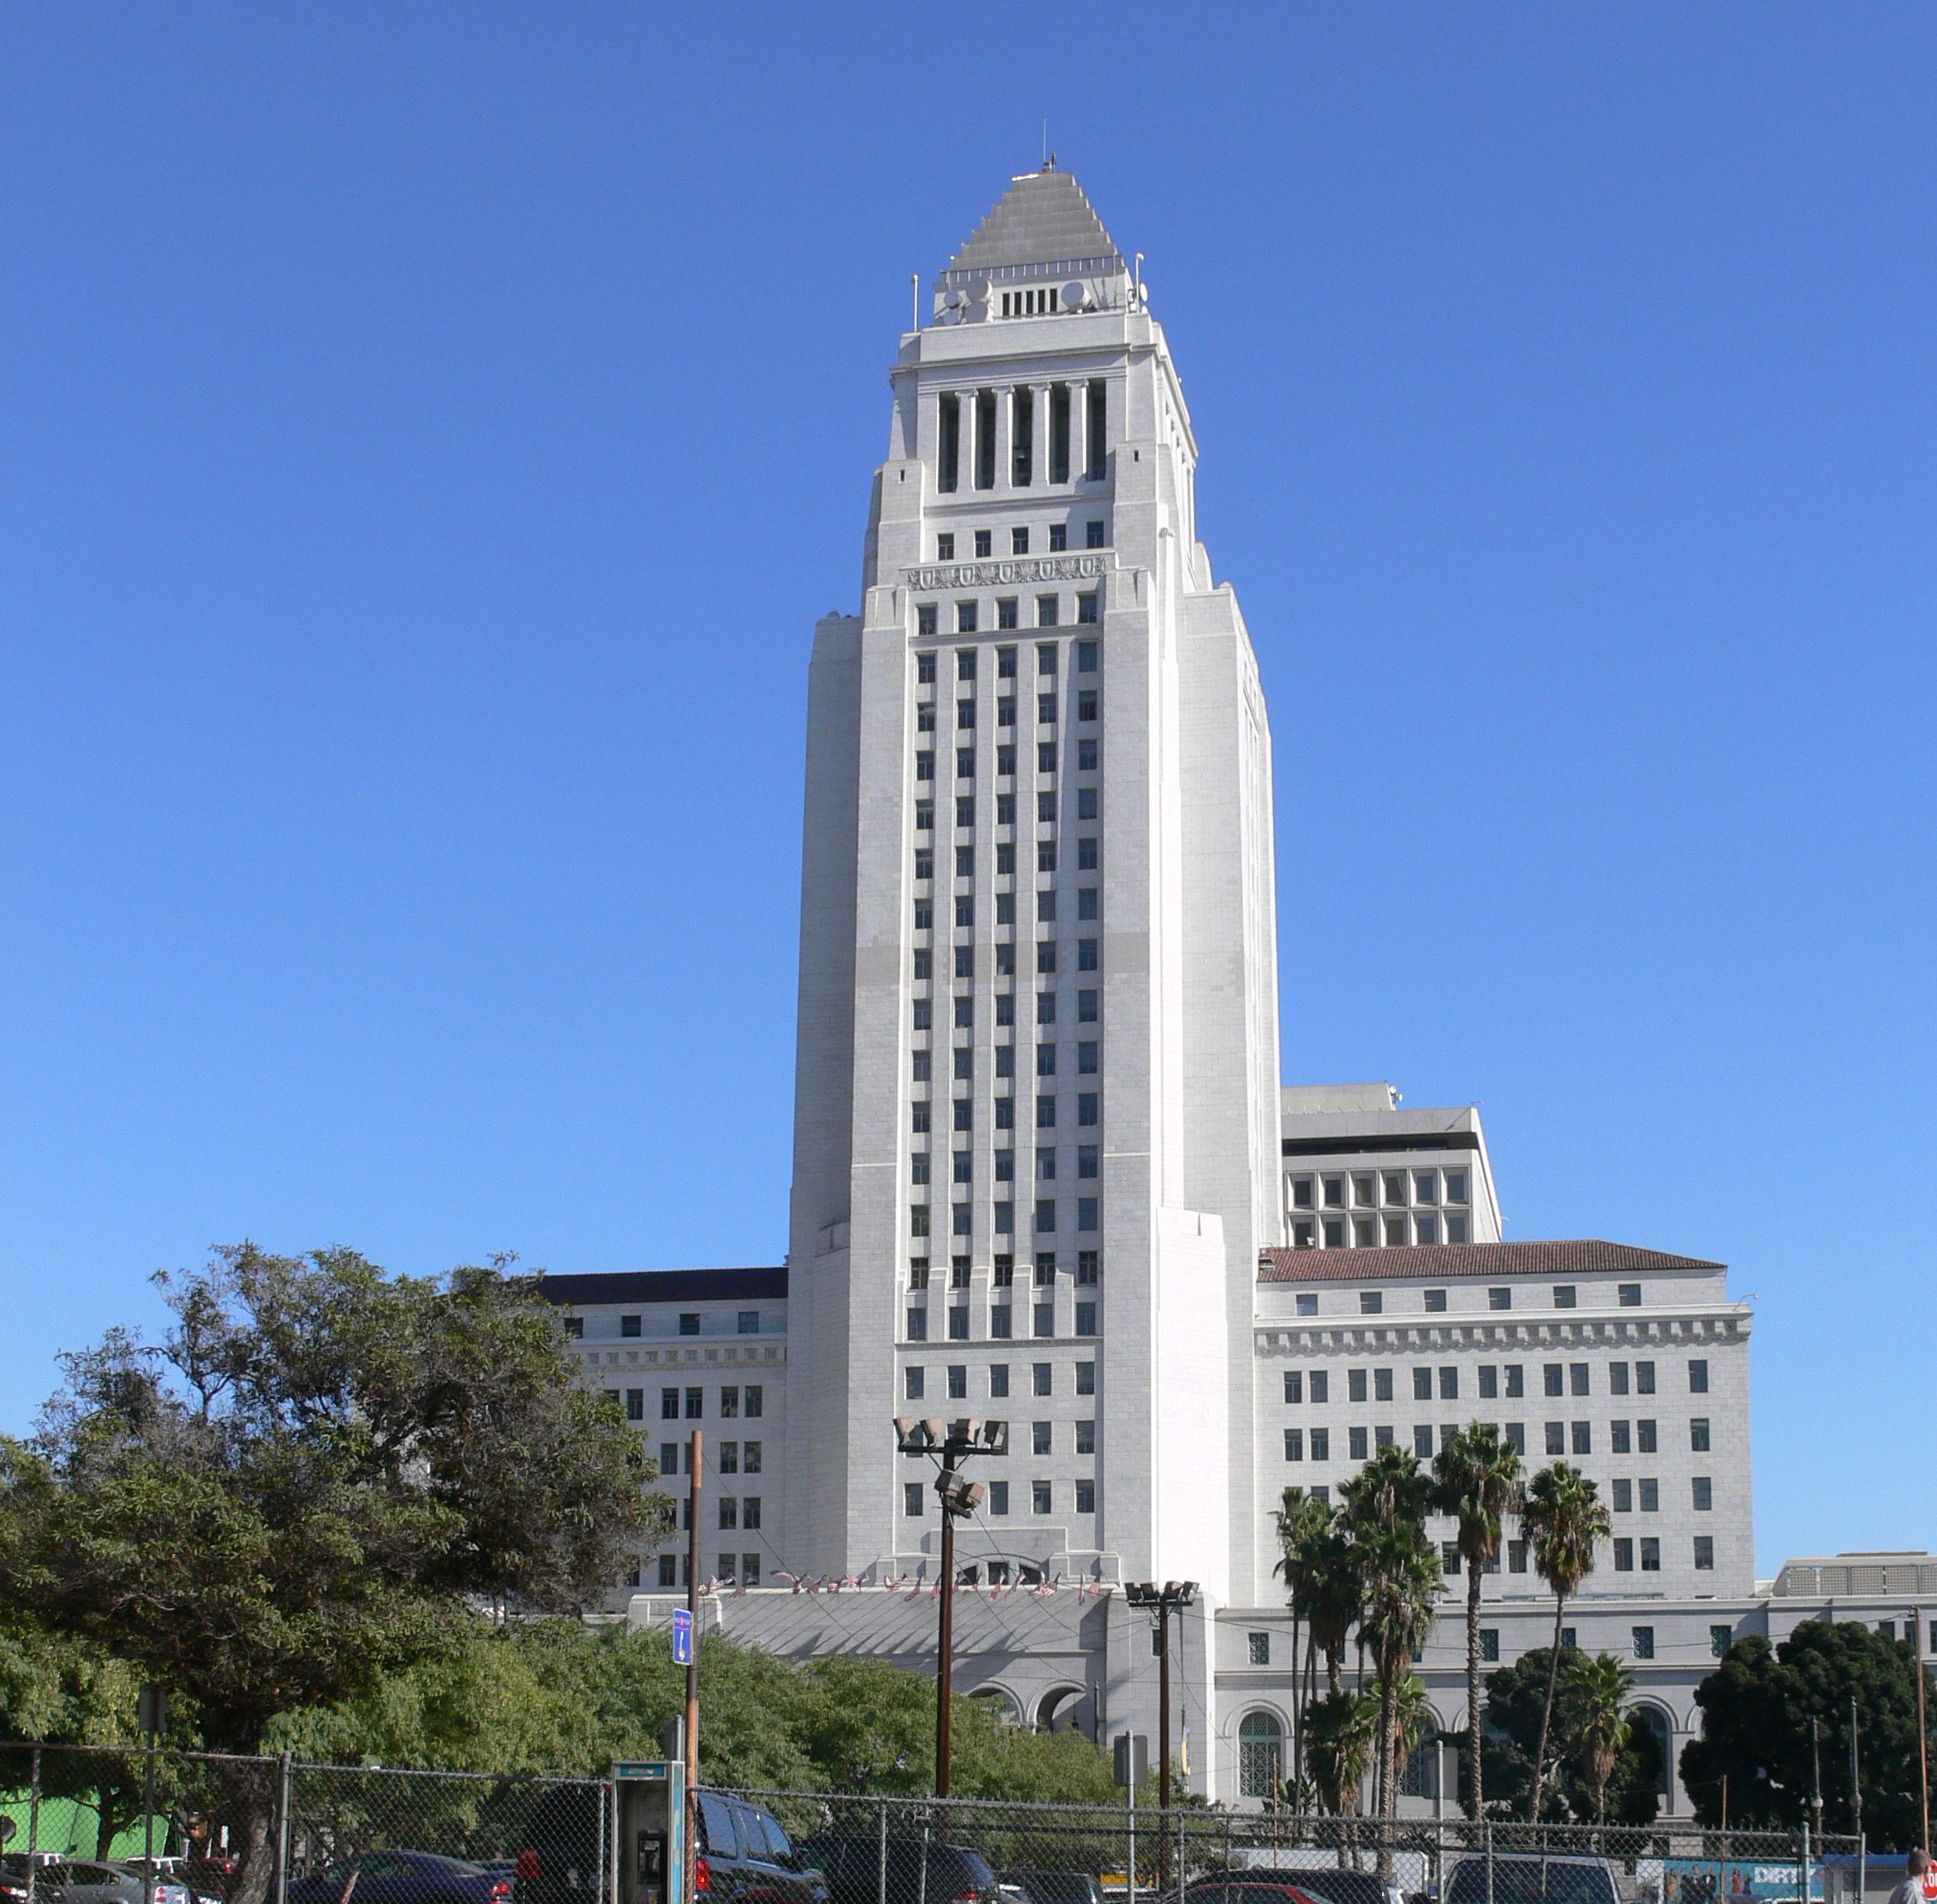 City Of Los Angeles Organizational Chart: Los Angeles City Hall 2008.jpg - Wikimedia Commons,Chart